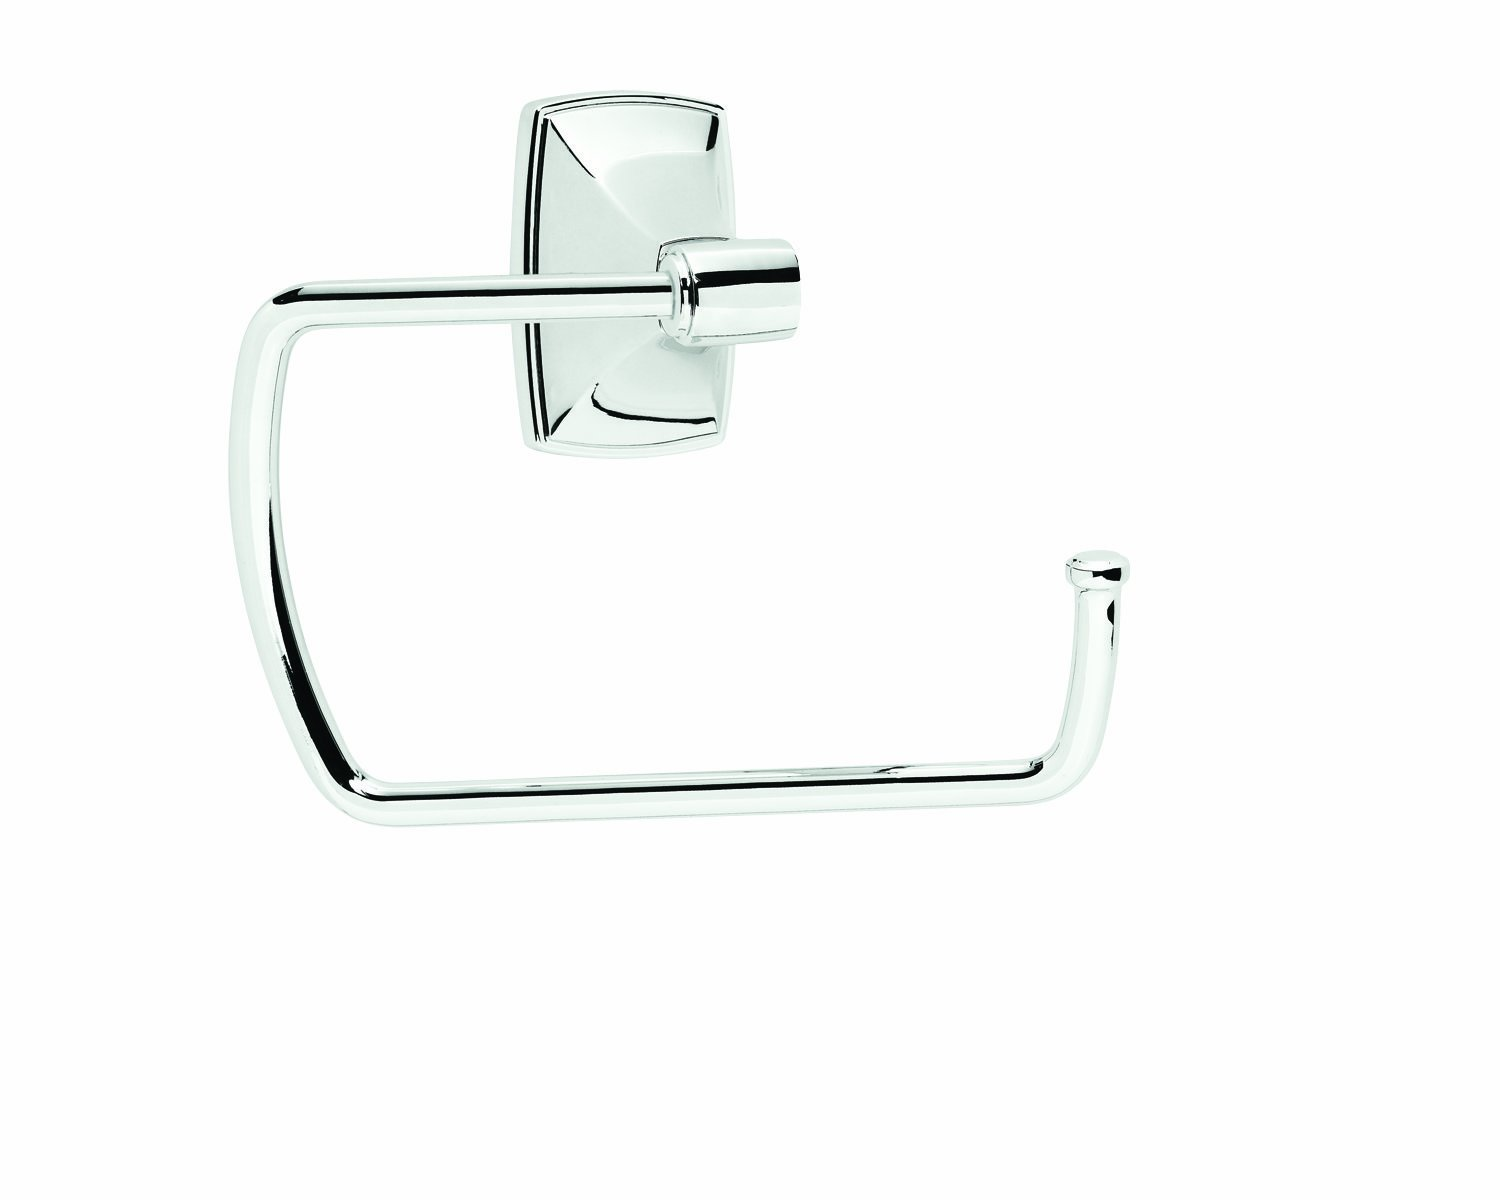 Amerock BH26501-26 Clarendon Collection Towel Ring, Polished Chrome